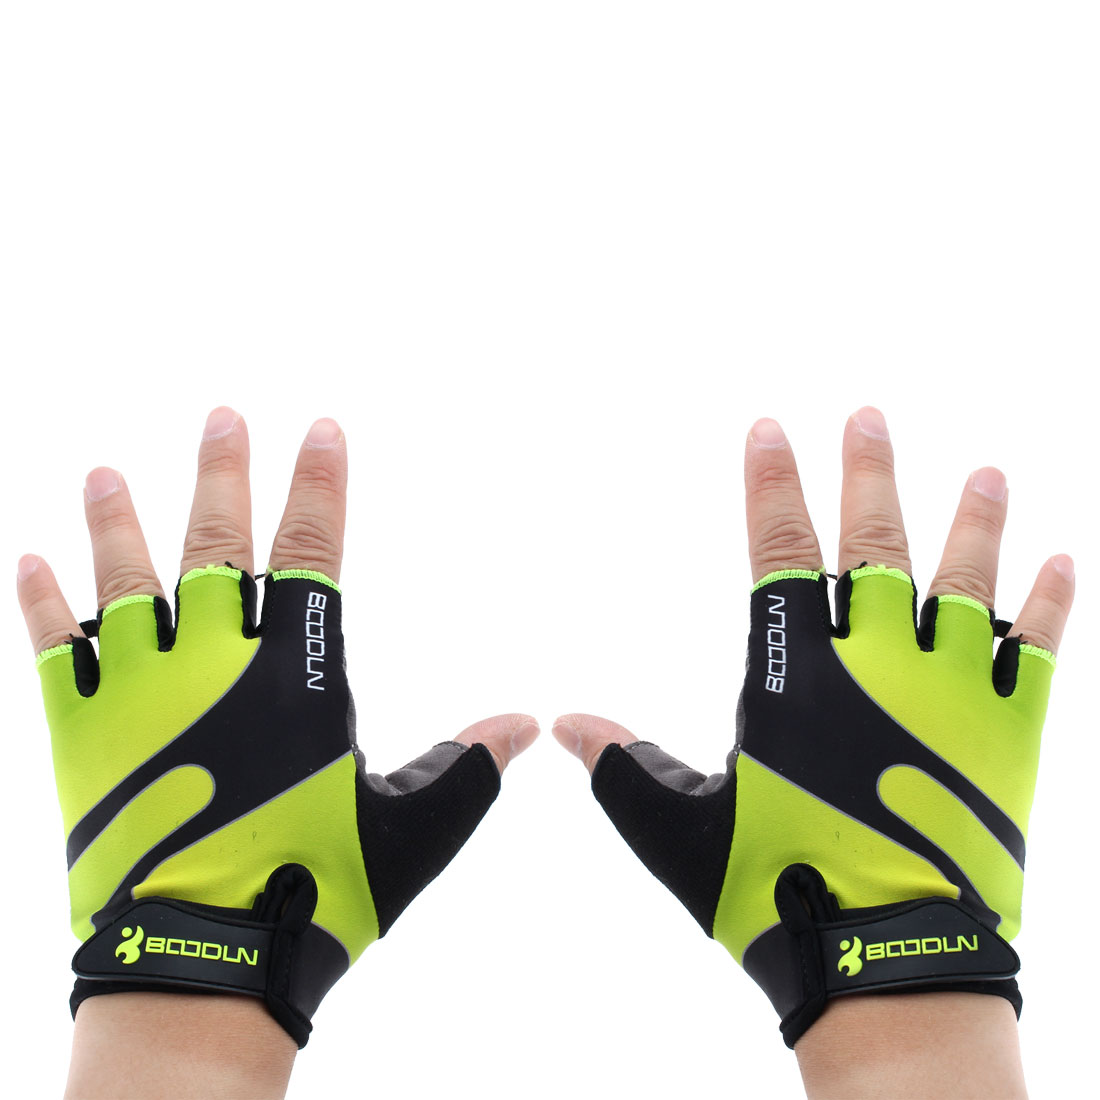 BOODUN Authorized Polyester Exercise Sports Lifting Training Bodybuilding Wrist Protector Half Finger Fitness Gloves Fluorescence Green XL Pair